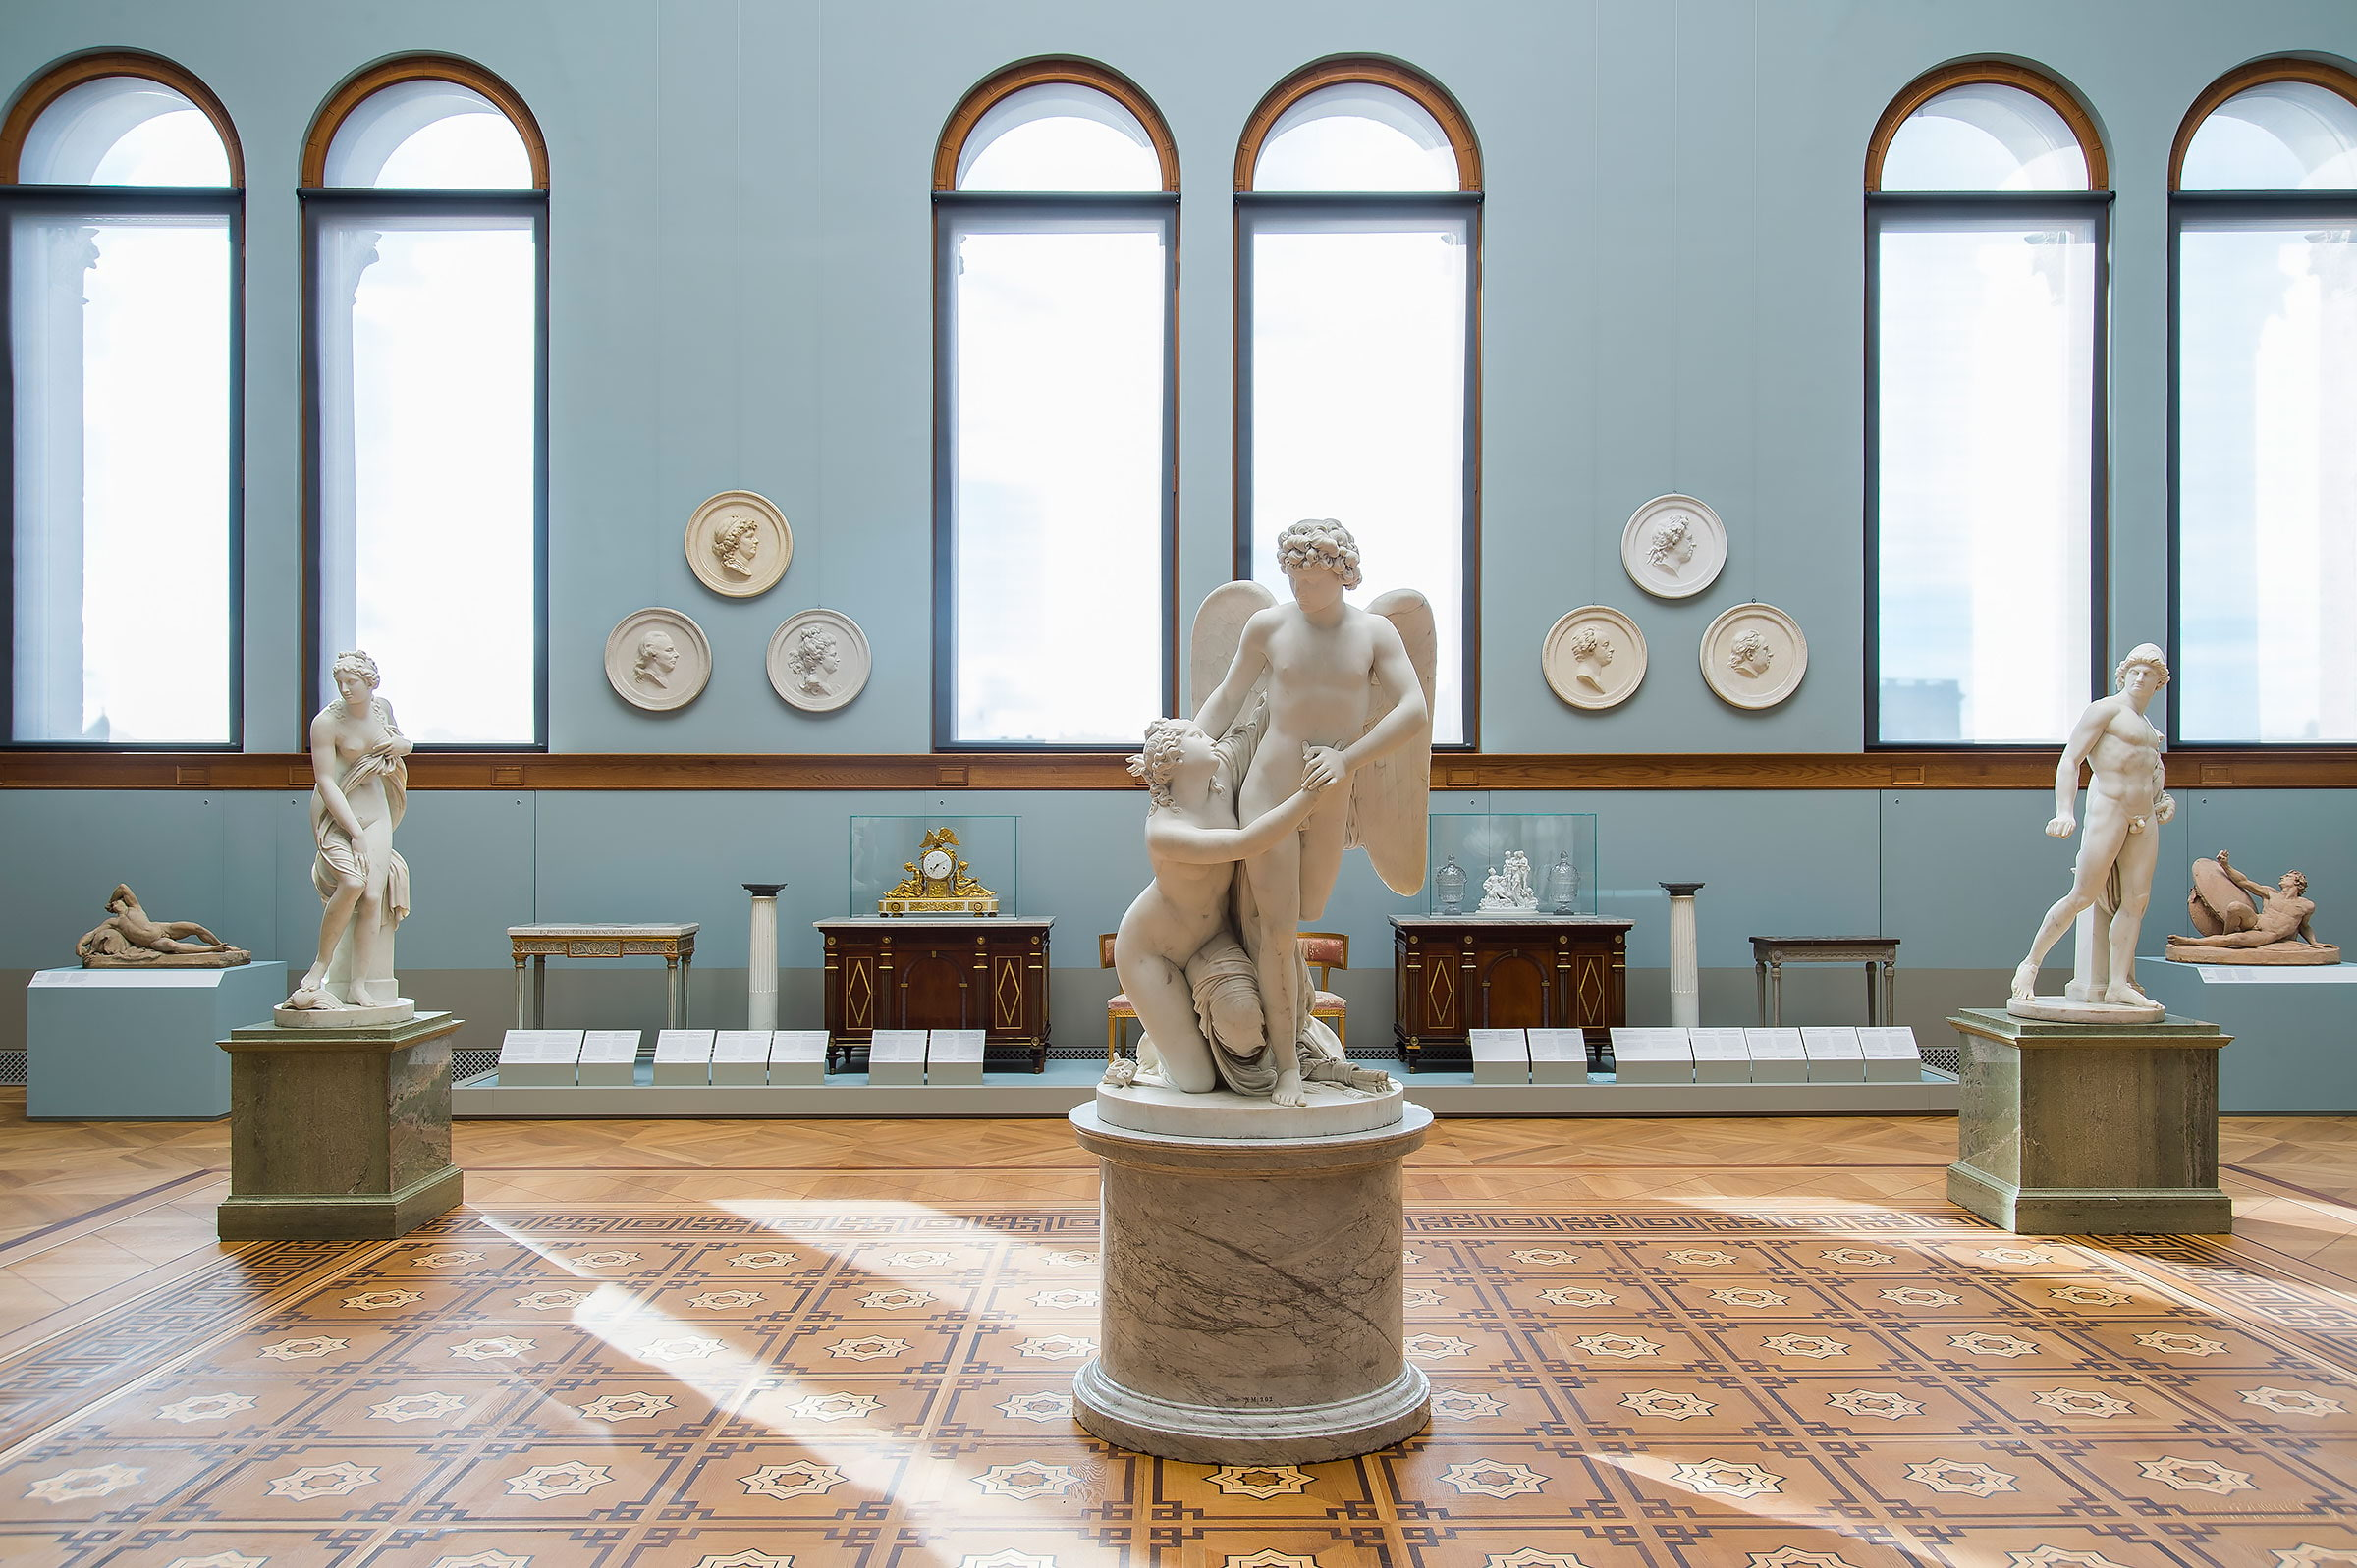 The guide to Stockholm's best museums